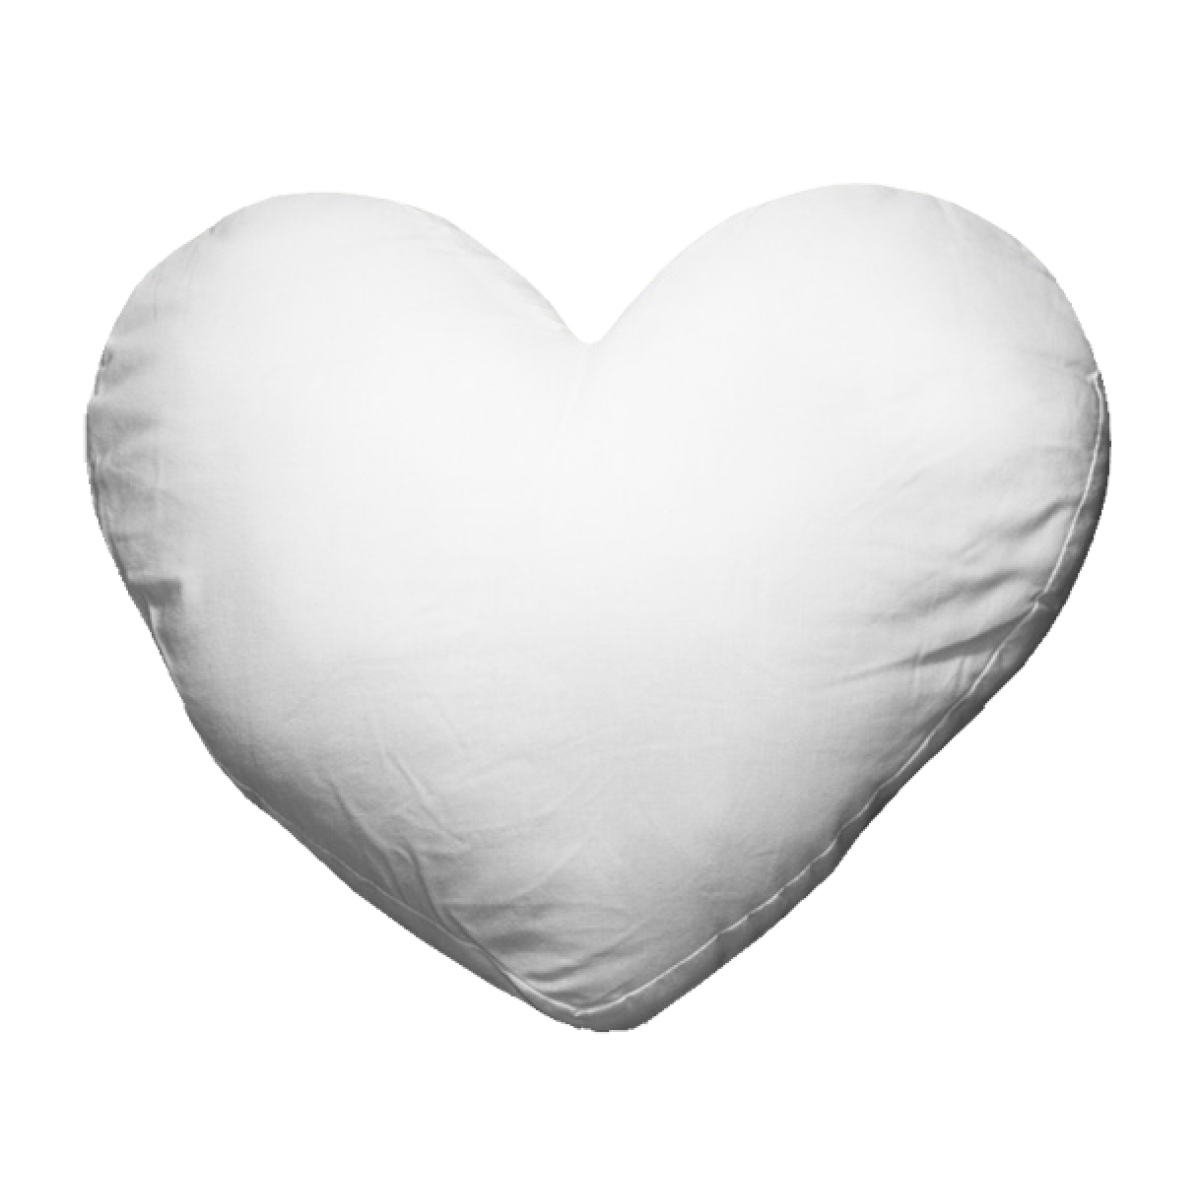 Heart Pillow Png image #28466